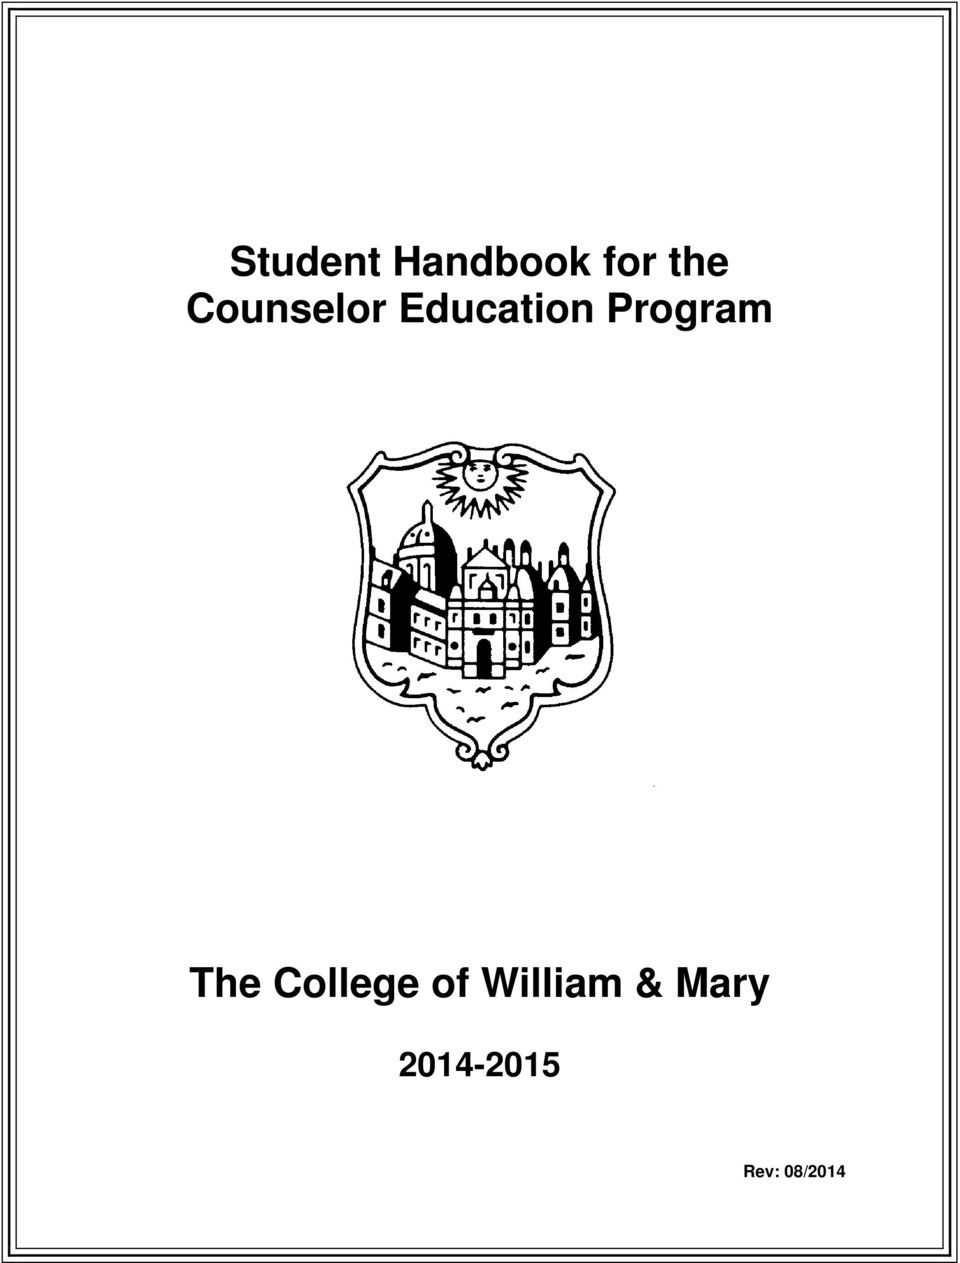 Program The College of